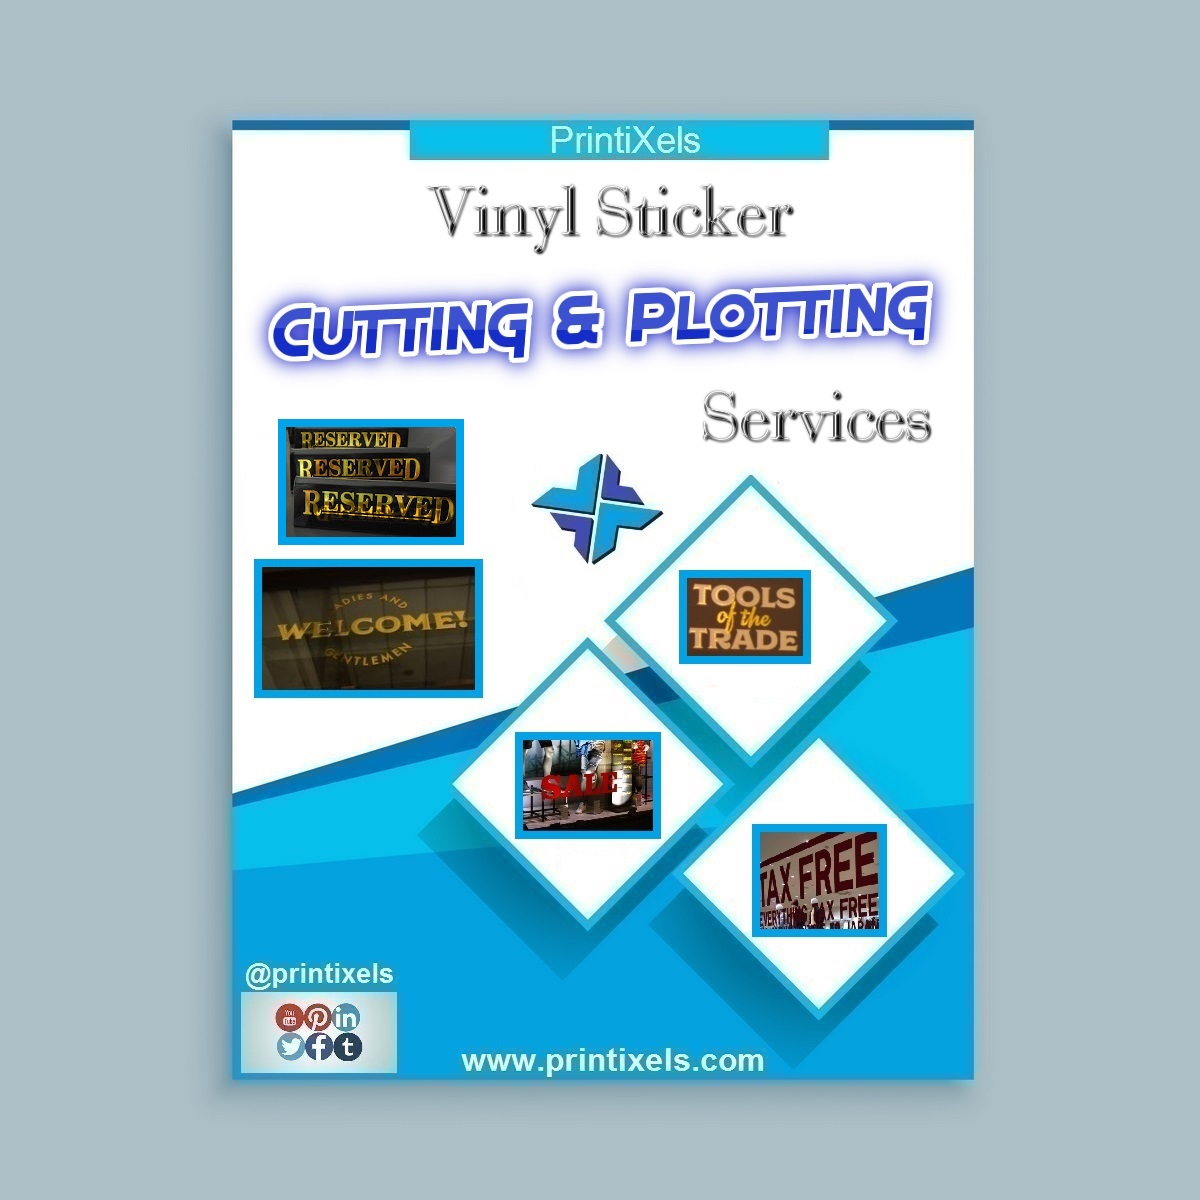 Vinyl Sticker Cutting & Plotting Services